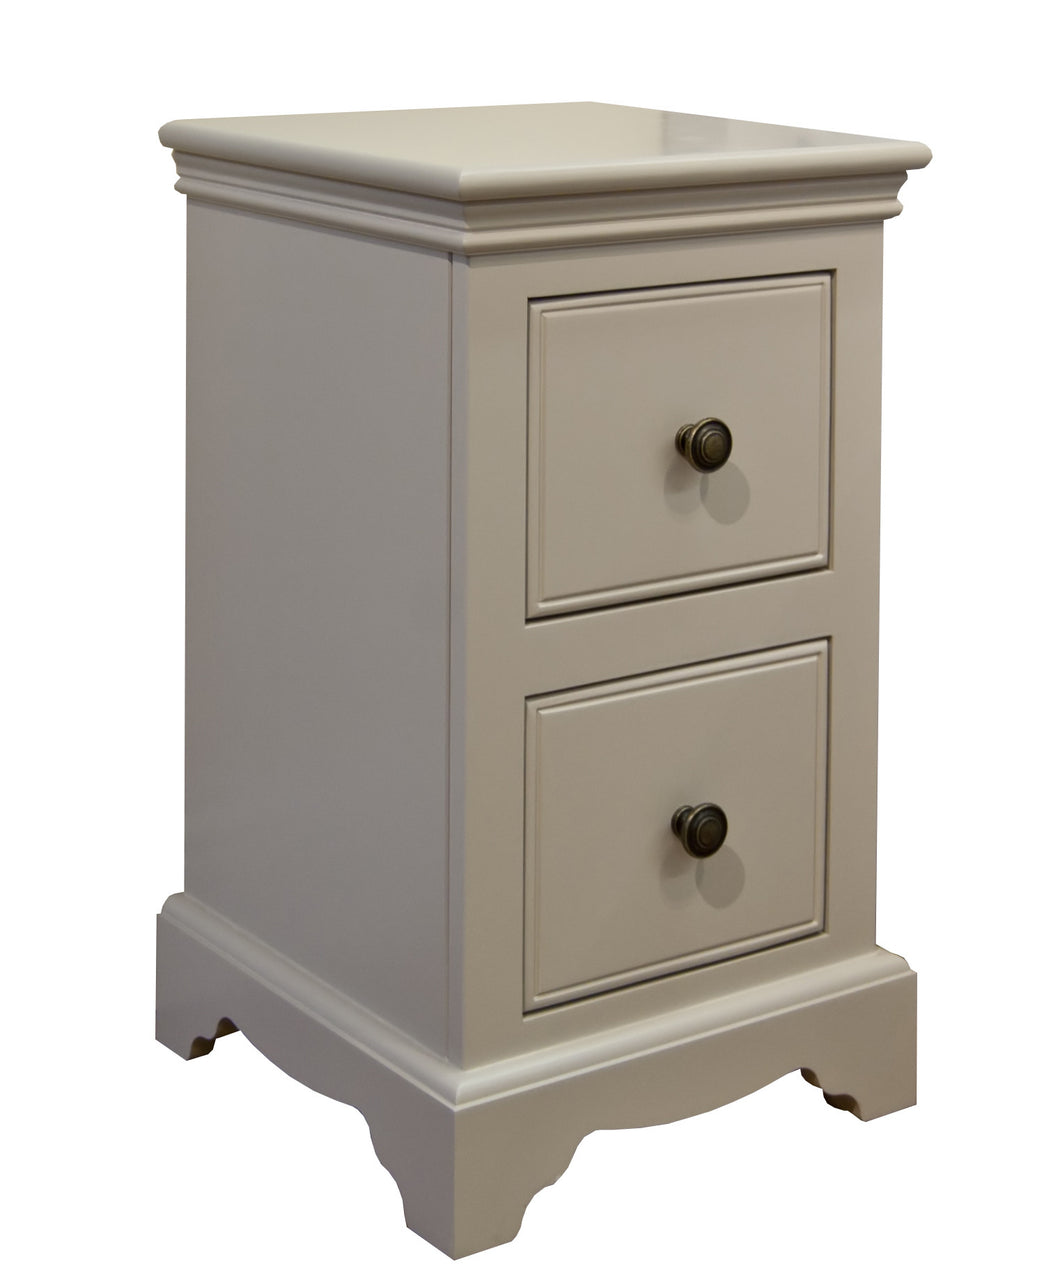 TCBC Inspiration 2 Drawer Bedside